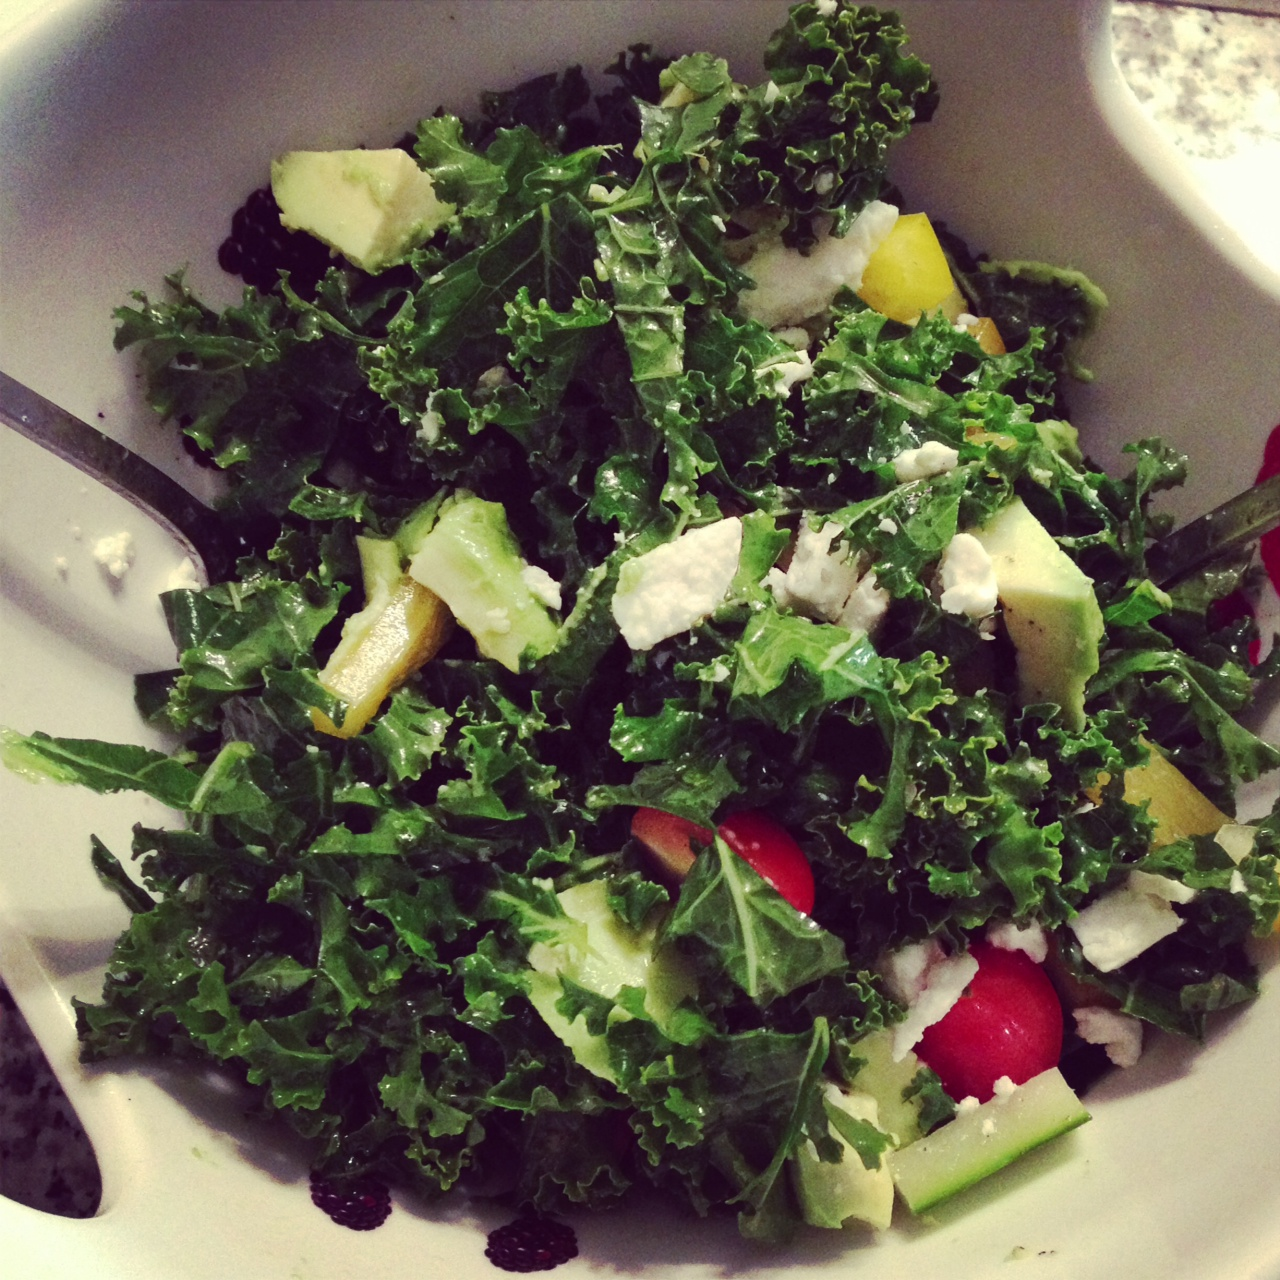 ... soon!), kale chips , garlicky sauteed kale and finally kale salad